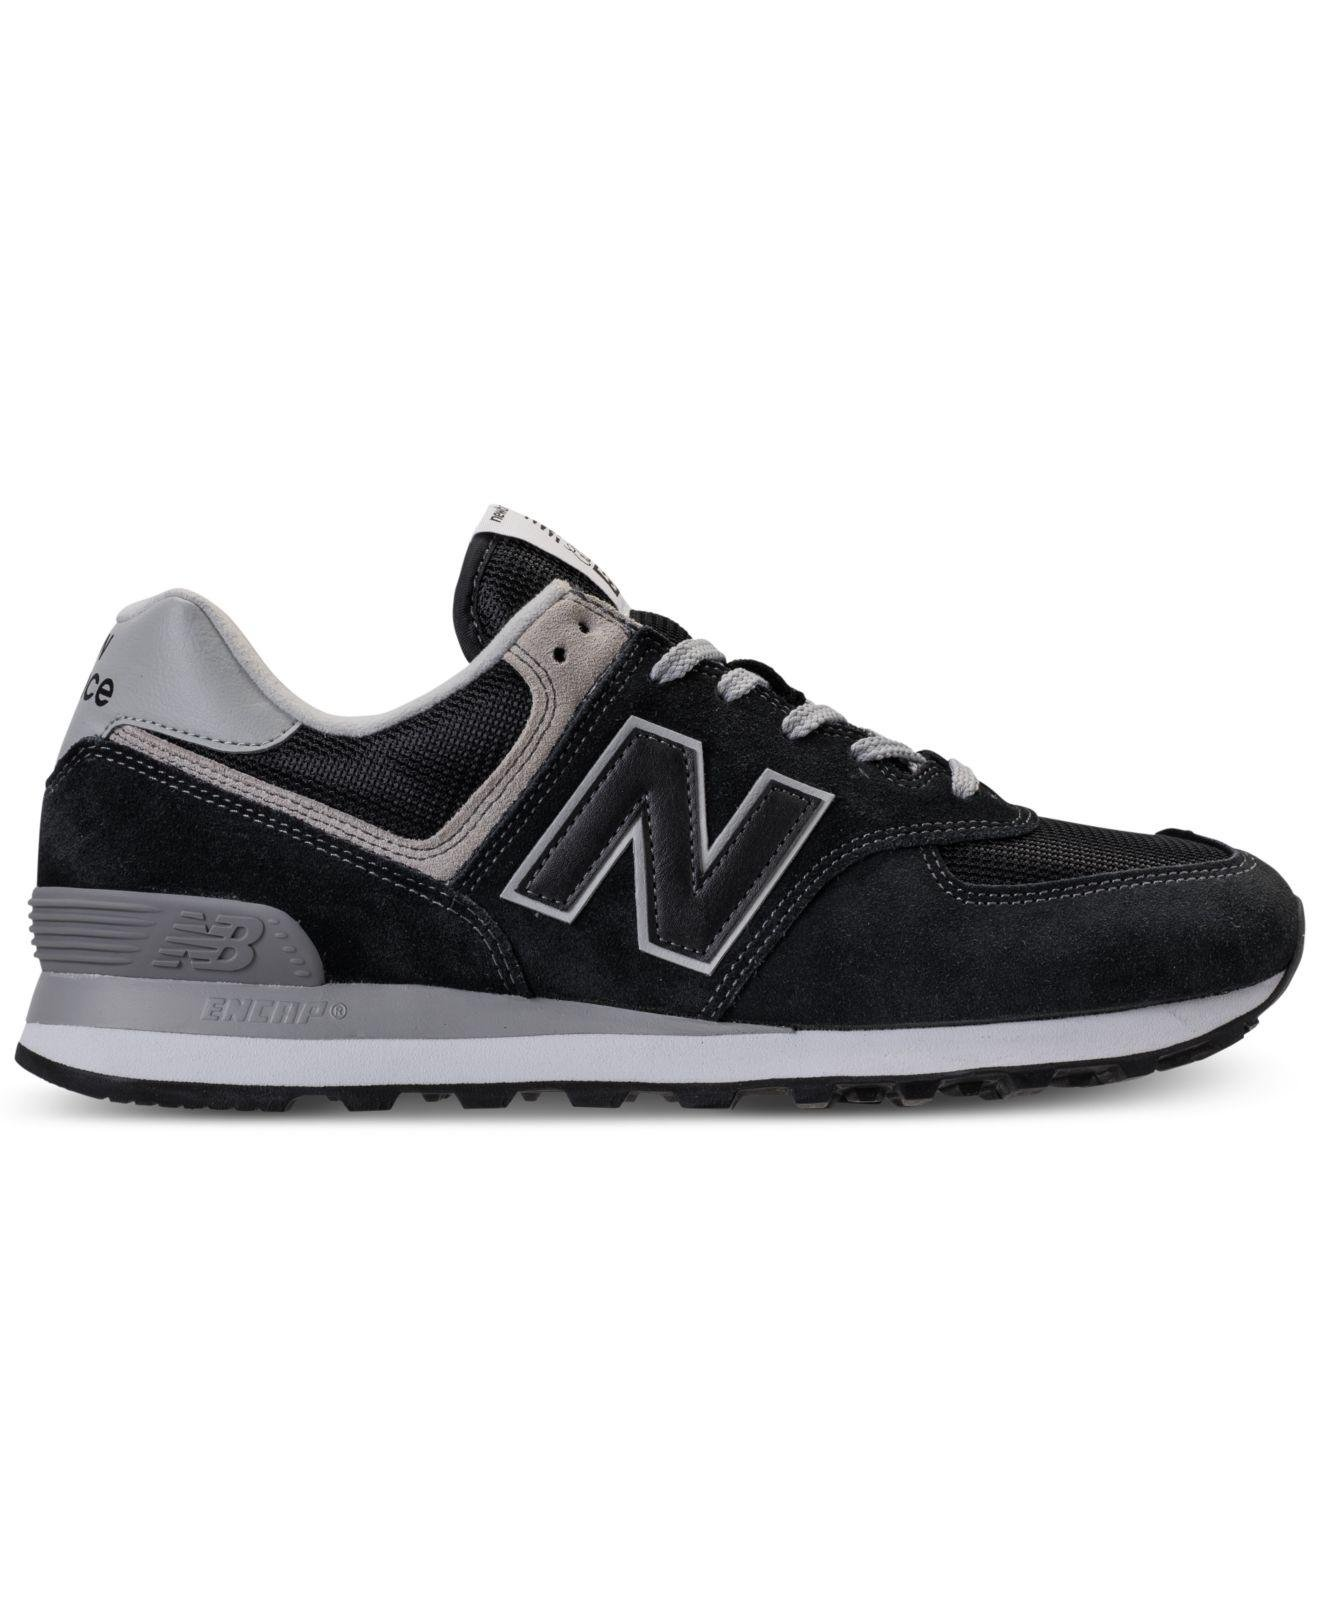 2bac6c328d750 Lyst - New Balance 574 Casual Sneakers From Finish Line in Black for Men